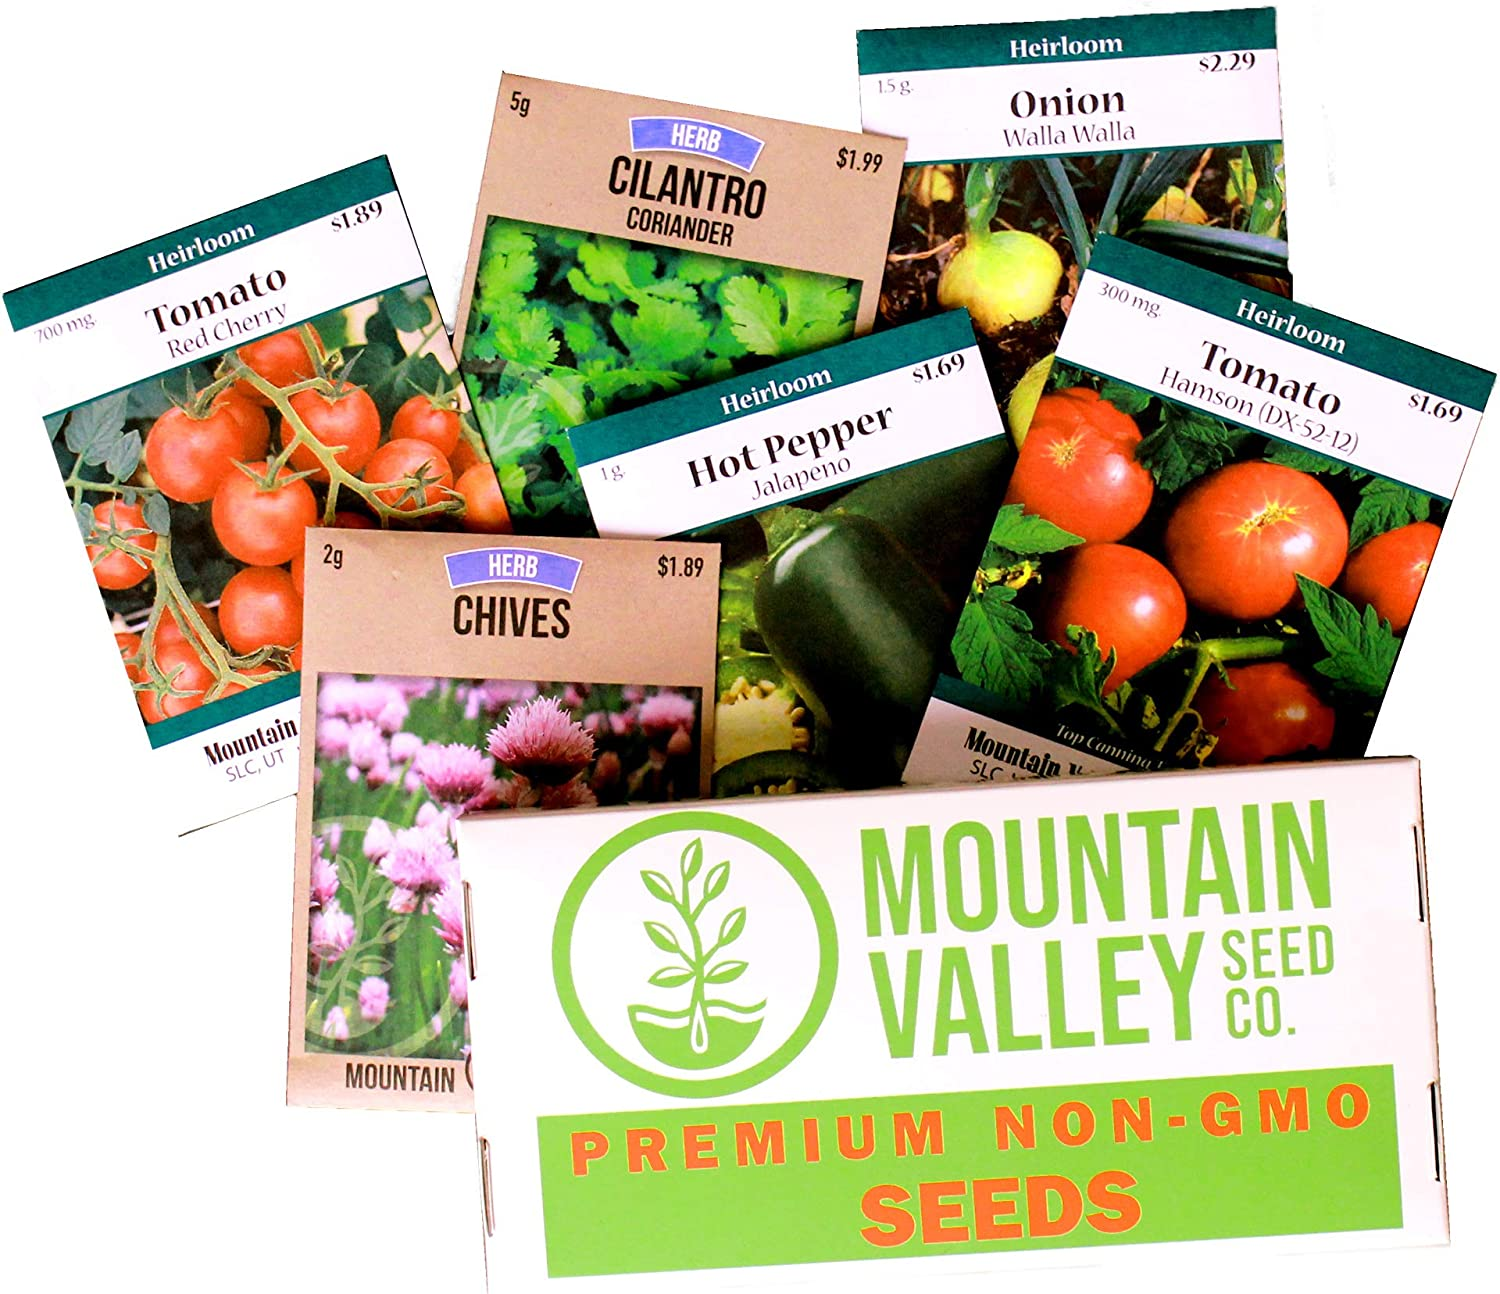 Mexican Seed Salsa Garden Collection | Basic Assortment | Grow Vegetables for Salsa, Hot Sauce, Pico De Gallo | 6 Non-GMO Vegetable Gardening Seed Packets: Jalapeno, Tomato, Cilantro, Onion, Chives,